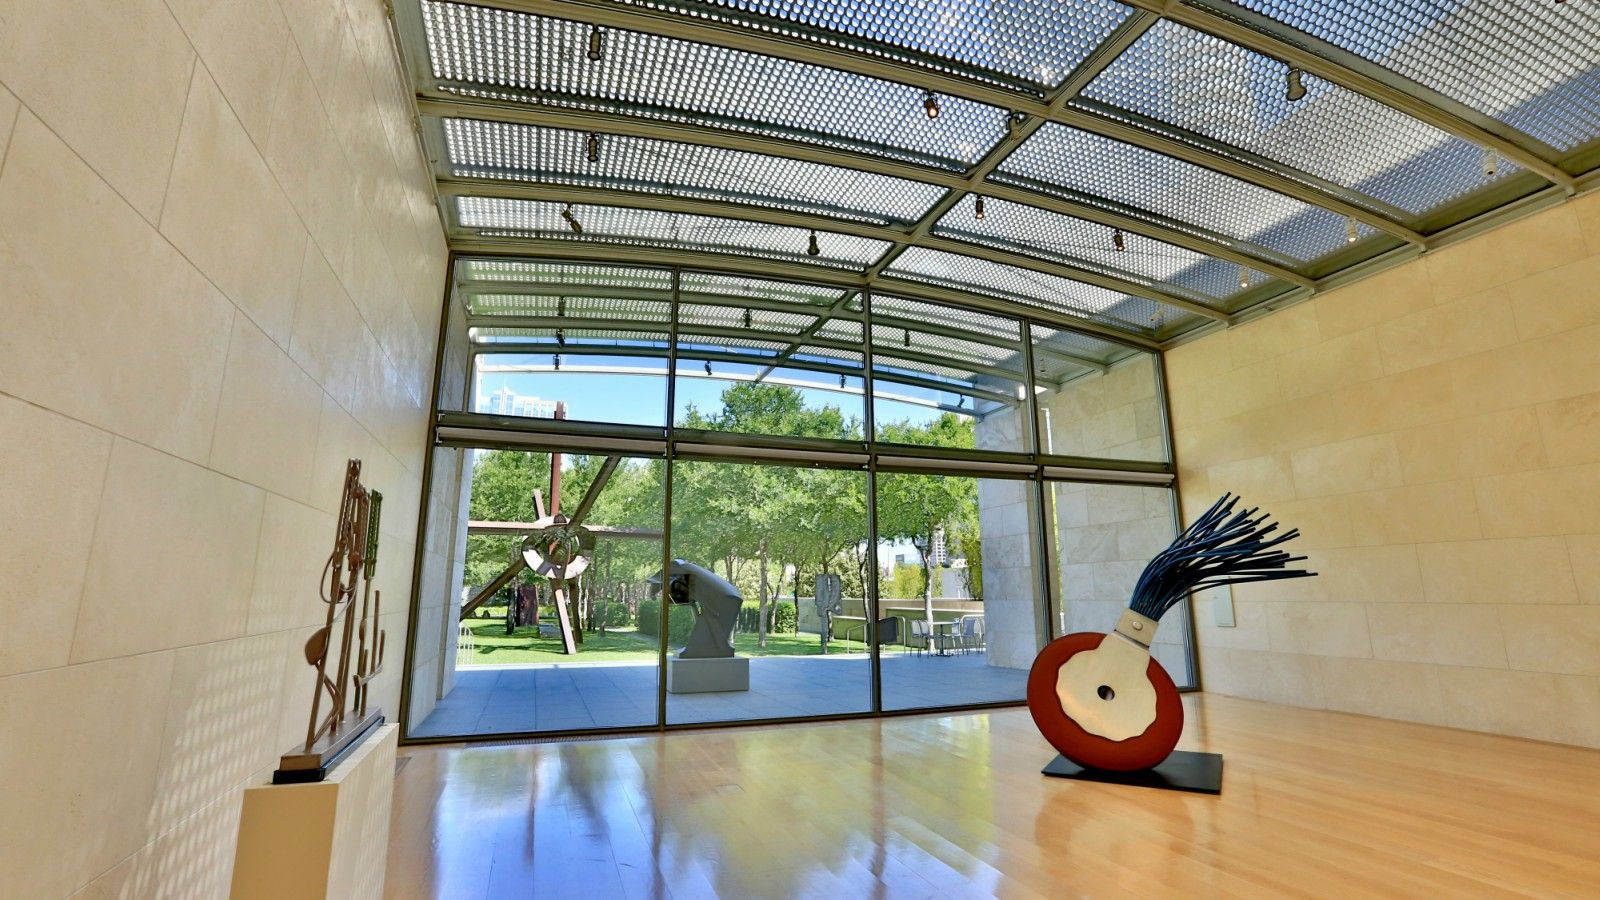 Things To Do In Dallas - Nasher Sculpture Center